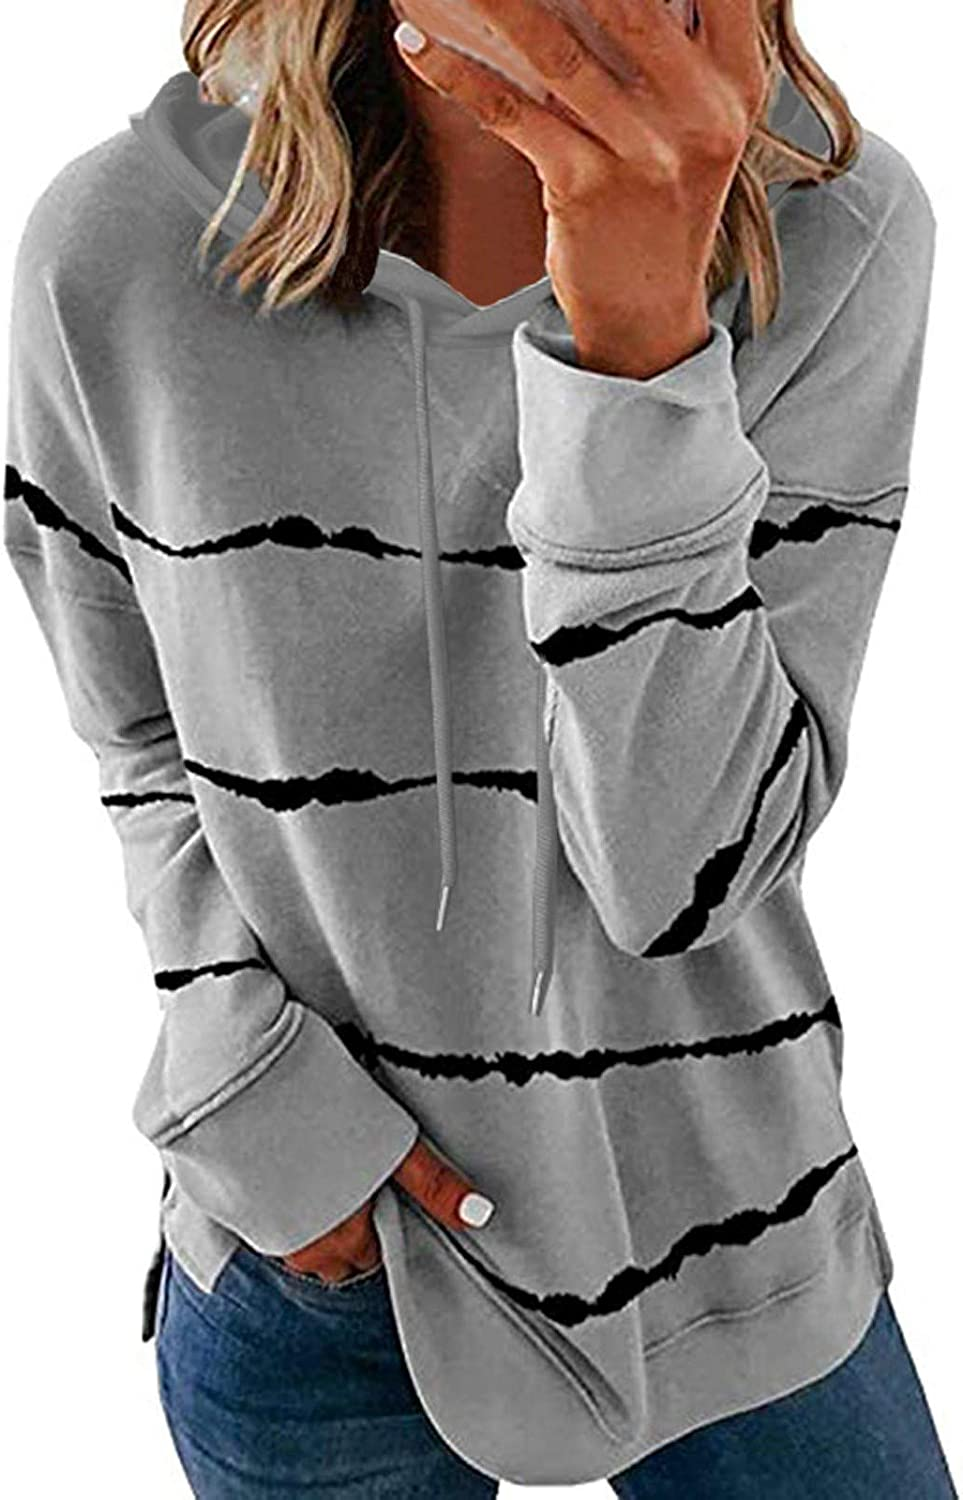 Hotkey Women's Fashion Hoodies Long Hooded S Sweatshirts half Sleeve Special price for a limited time